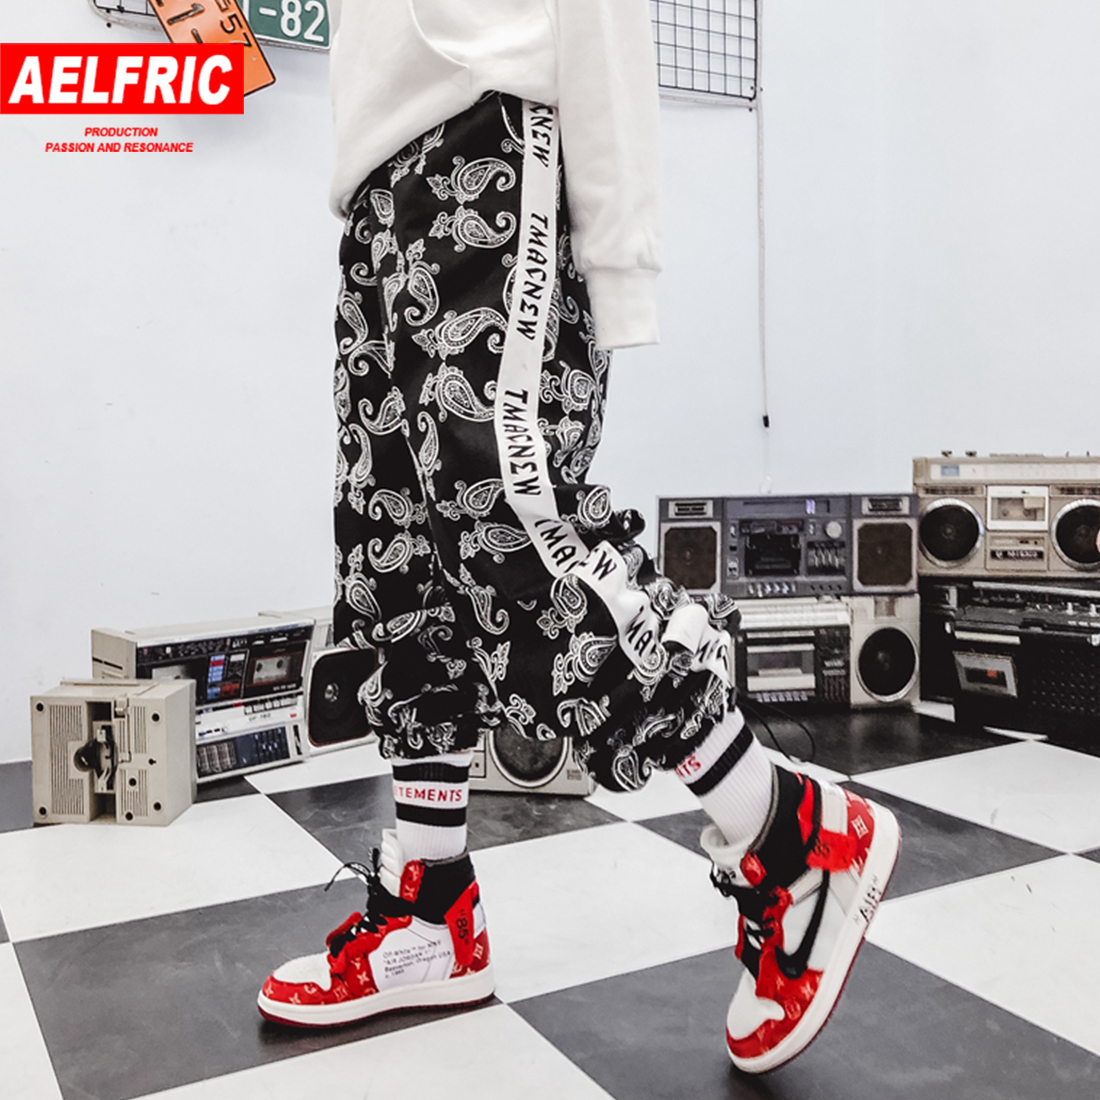 Honey Aelfric Brand 2019 Loose Casual Swearpants Spring Women Clothes Trousers Geometric Side Track Letter Print Hip Hop Harem Pants